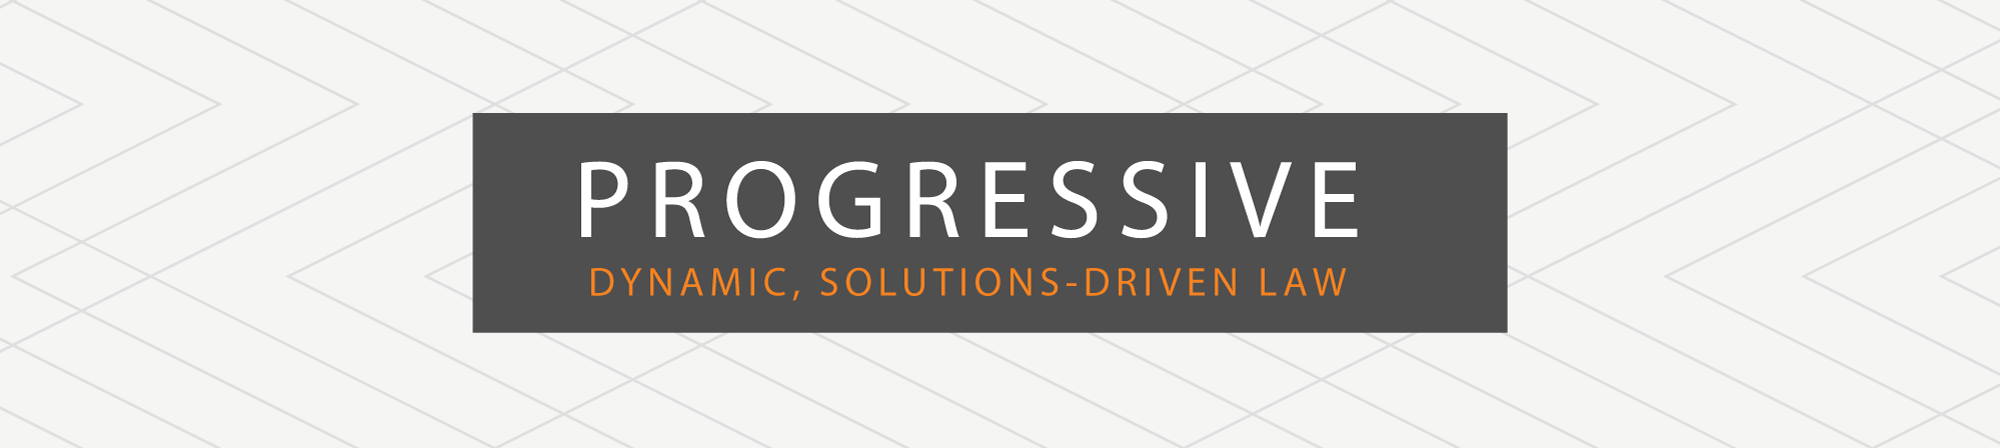 Progressive, Dynamic, Solutions-Driven Law